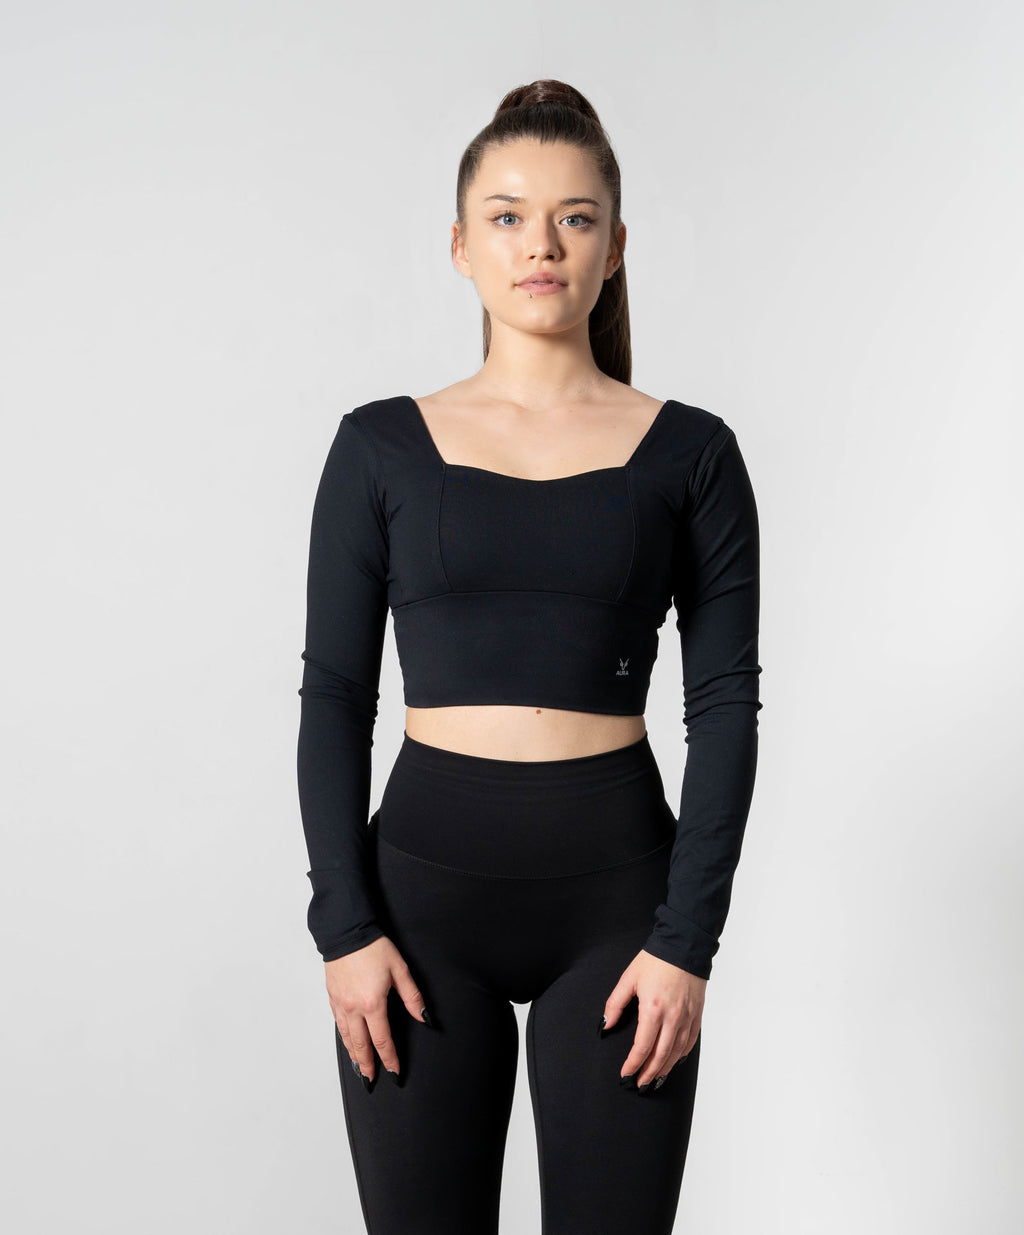 Elevate Classic Black Long Sleeve Top